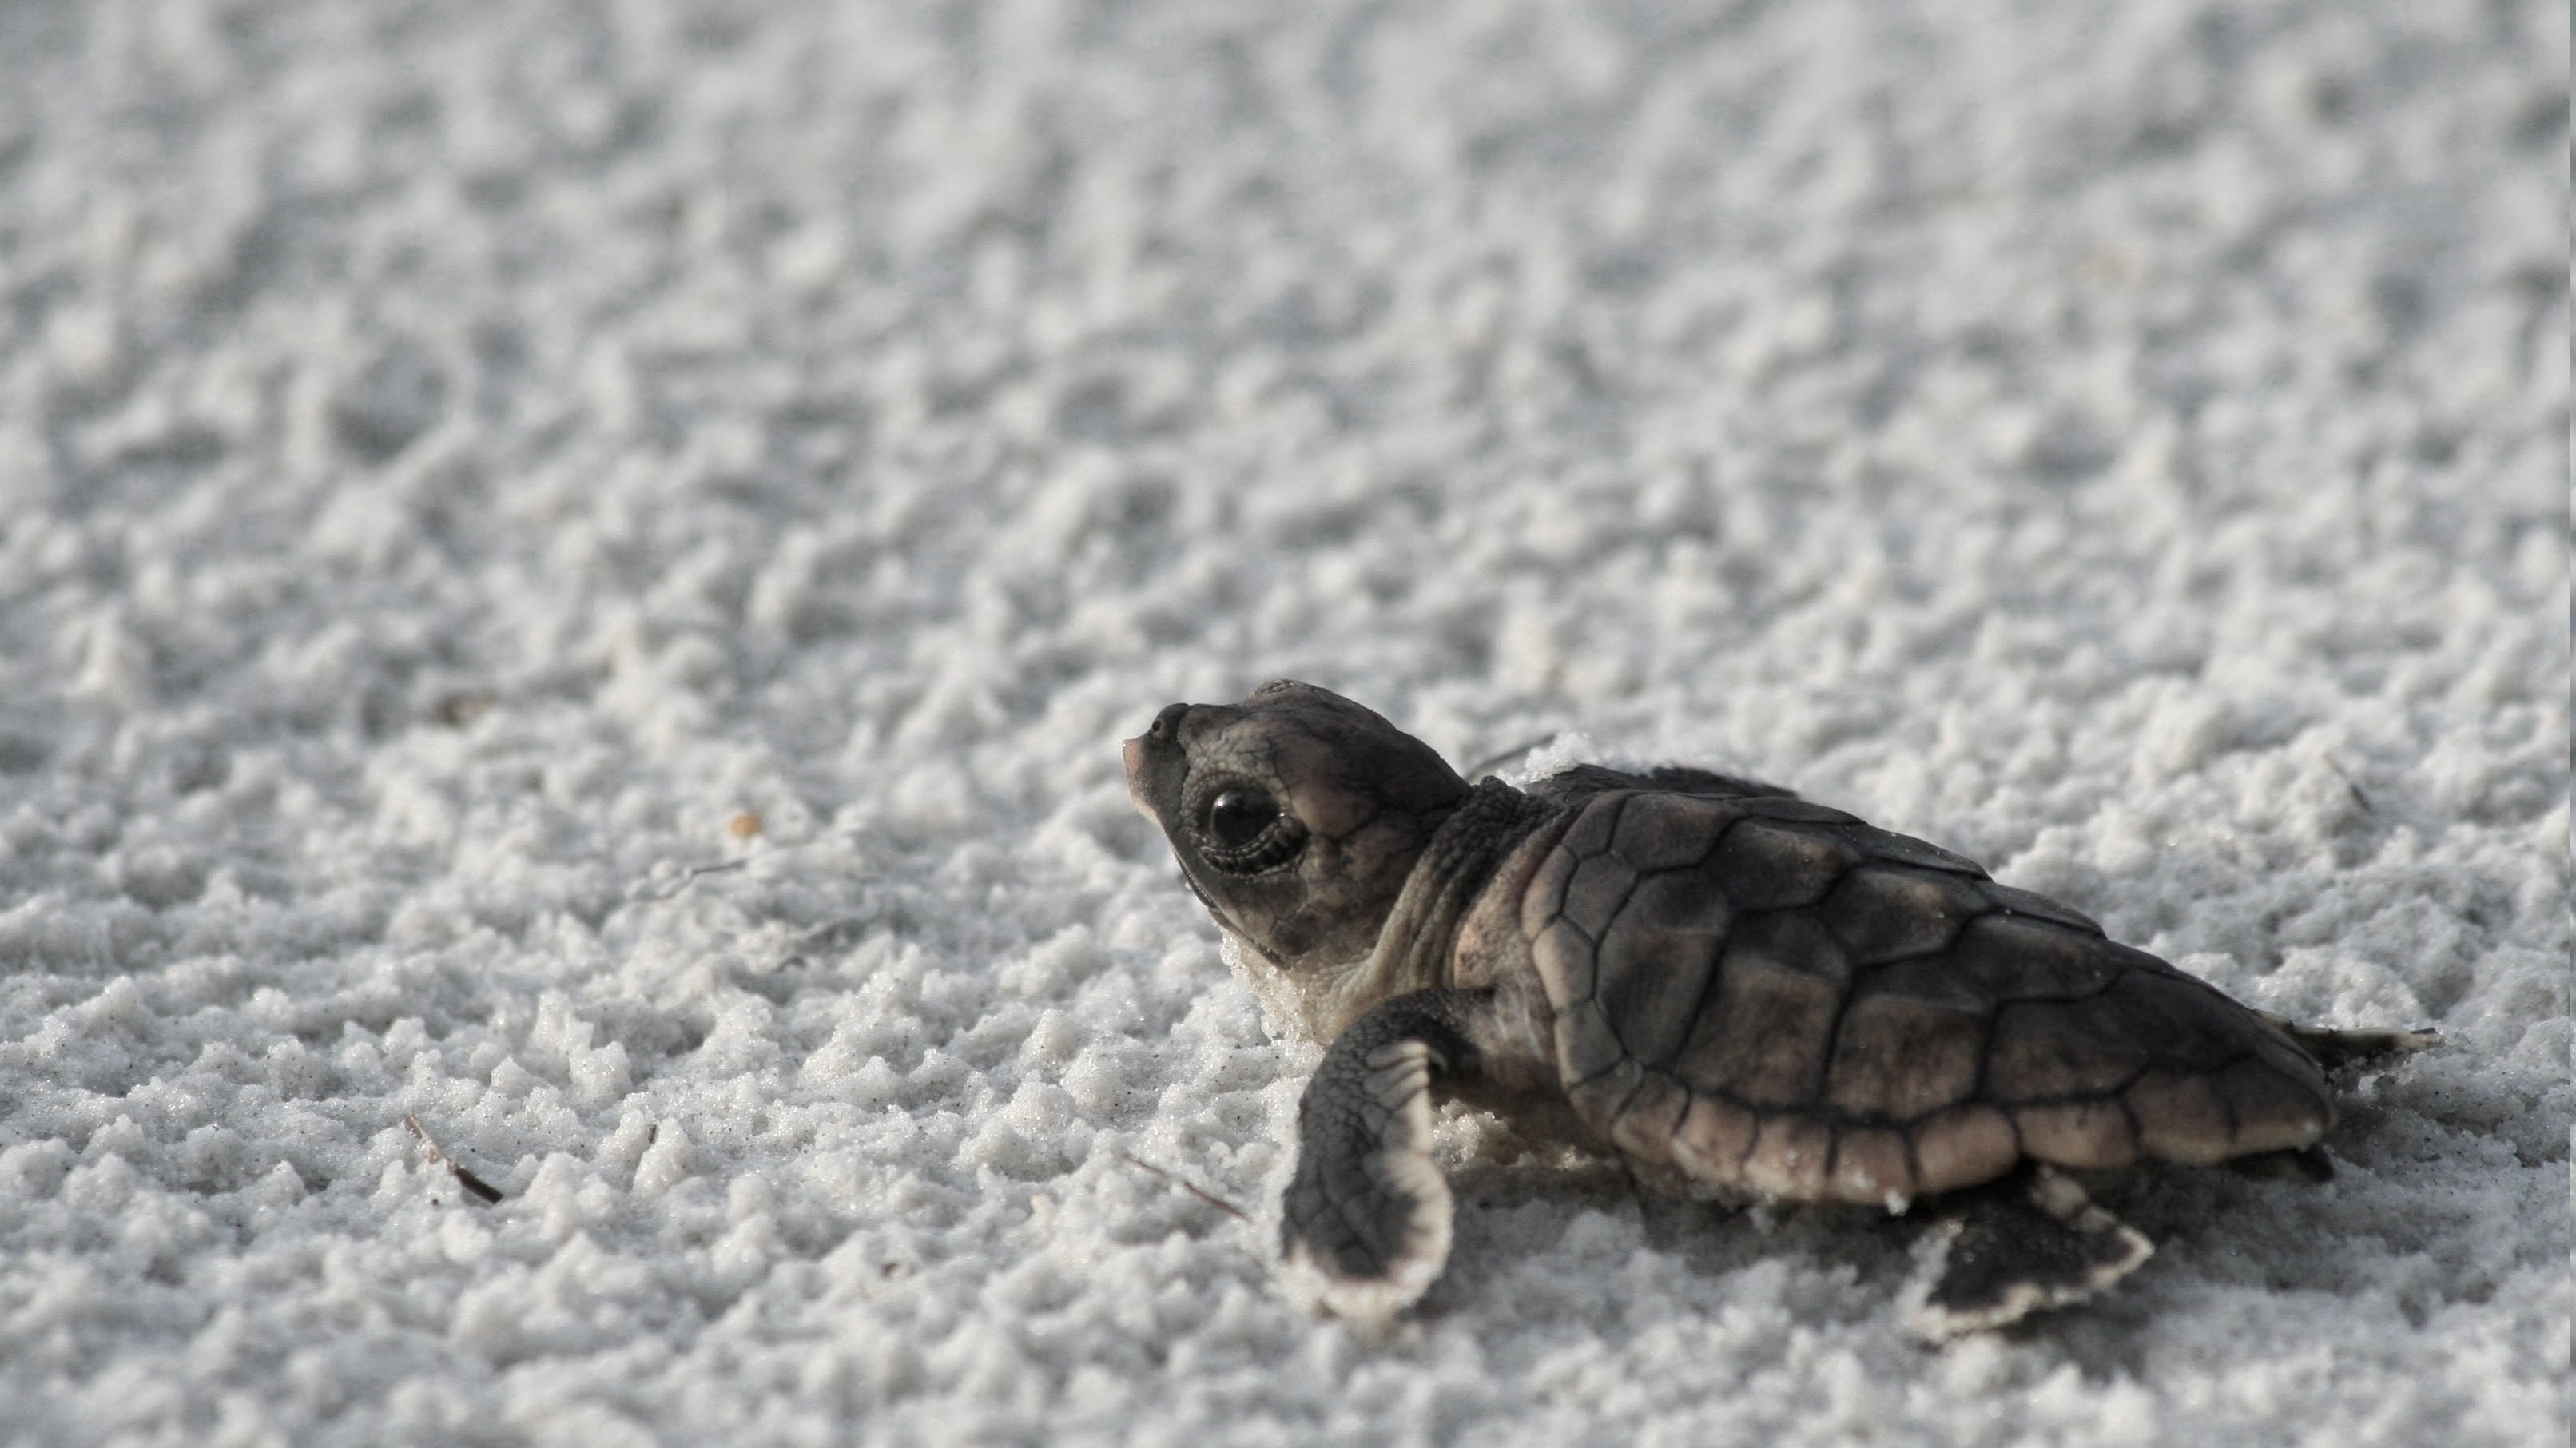 Biggest Collection Of Hd Baby Wallpaper For Desktop And Mobile: Cute Turtle Wallpaper (59+ Images